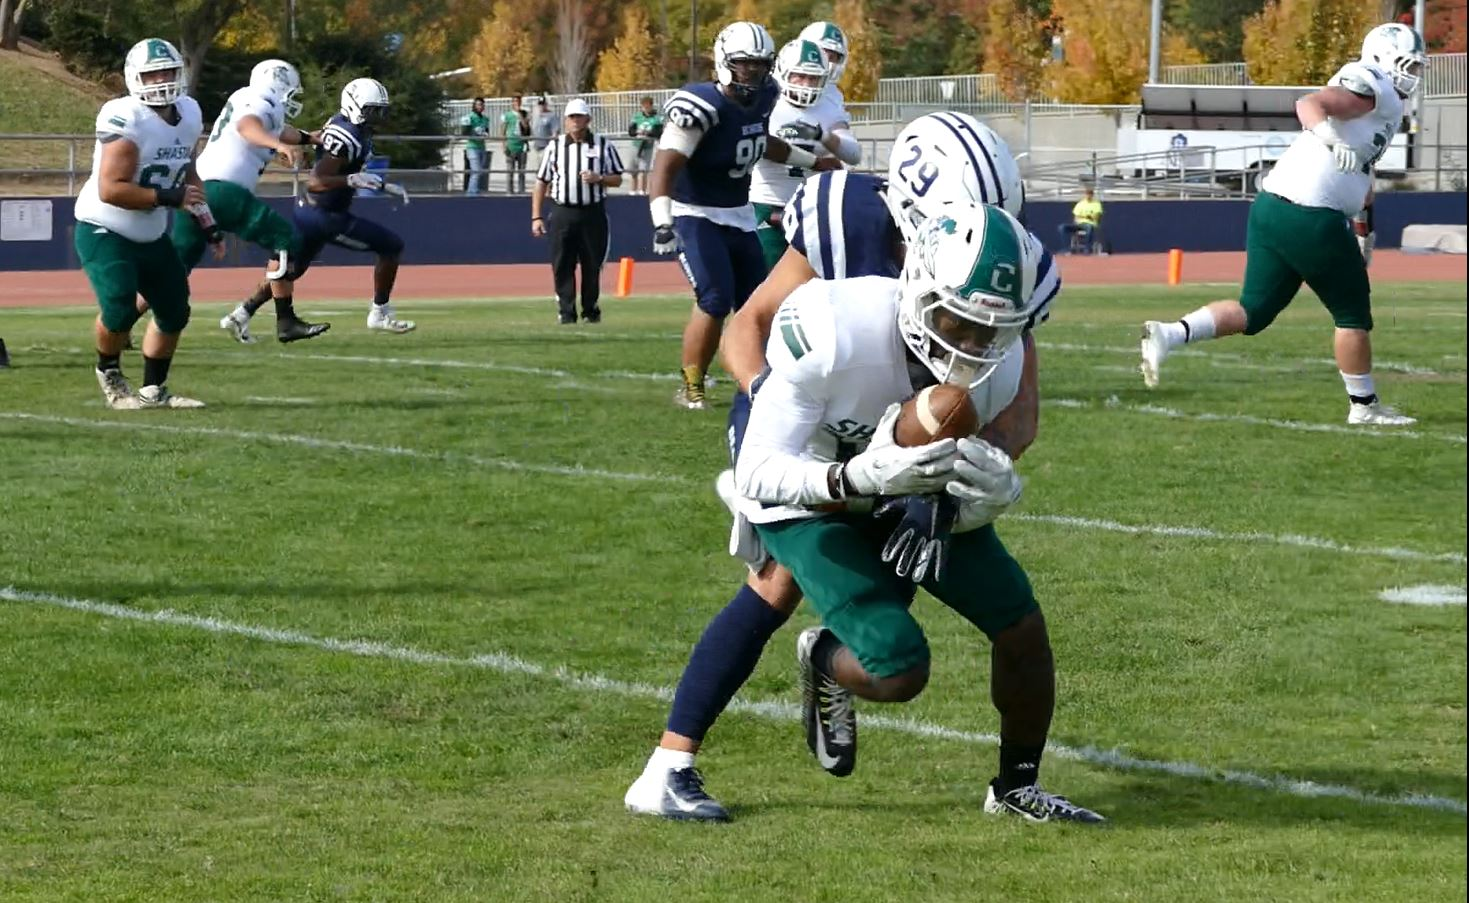 SHASTA FALLS FLAT IN SECOND HALF IN 44-17 LOSS TO NO. 24 AMERICAN RIVER